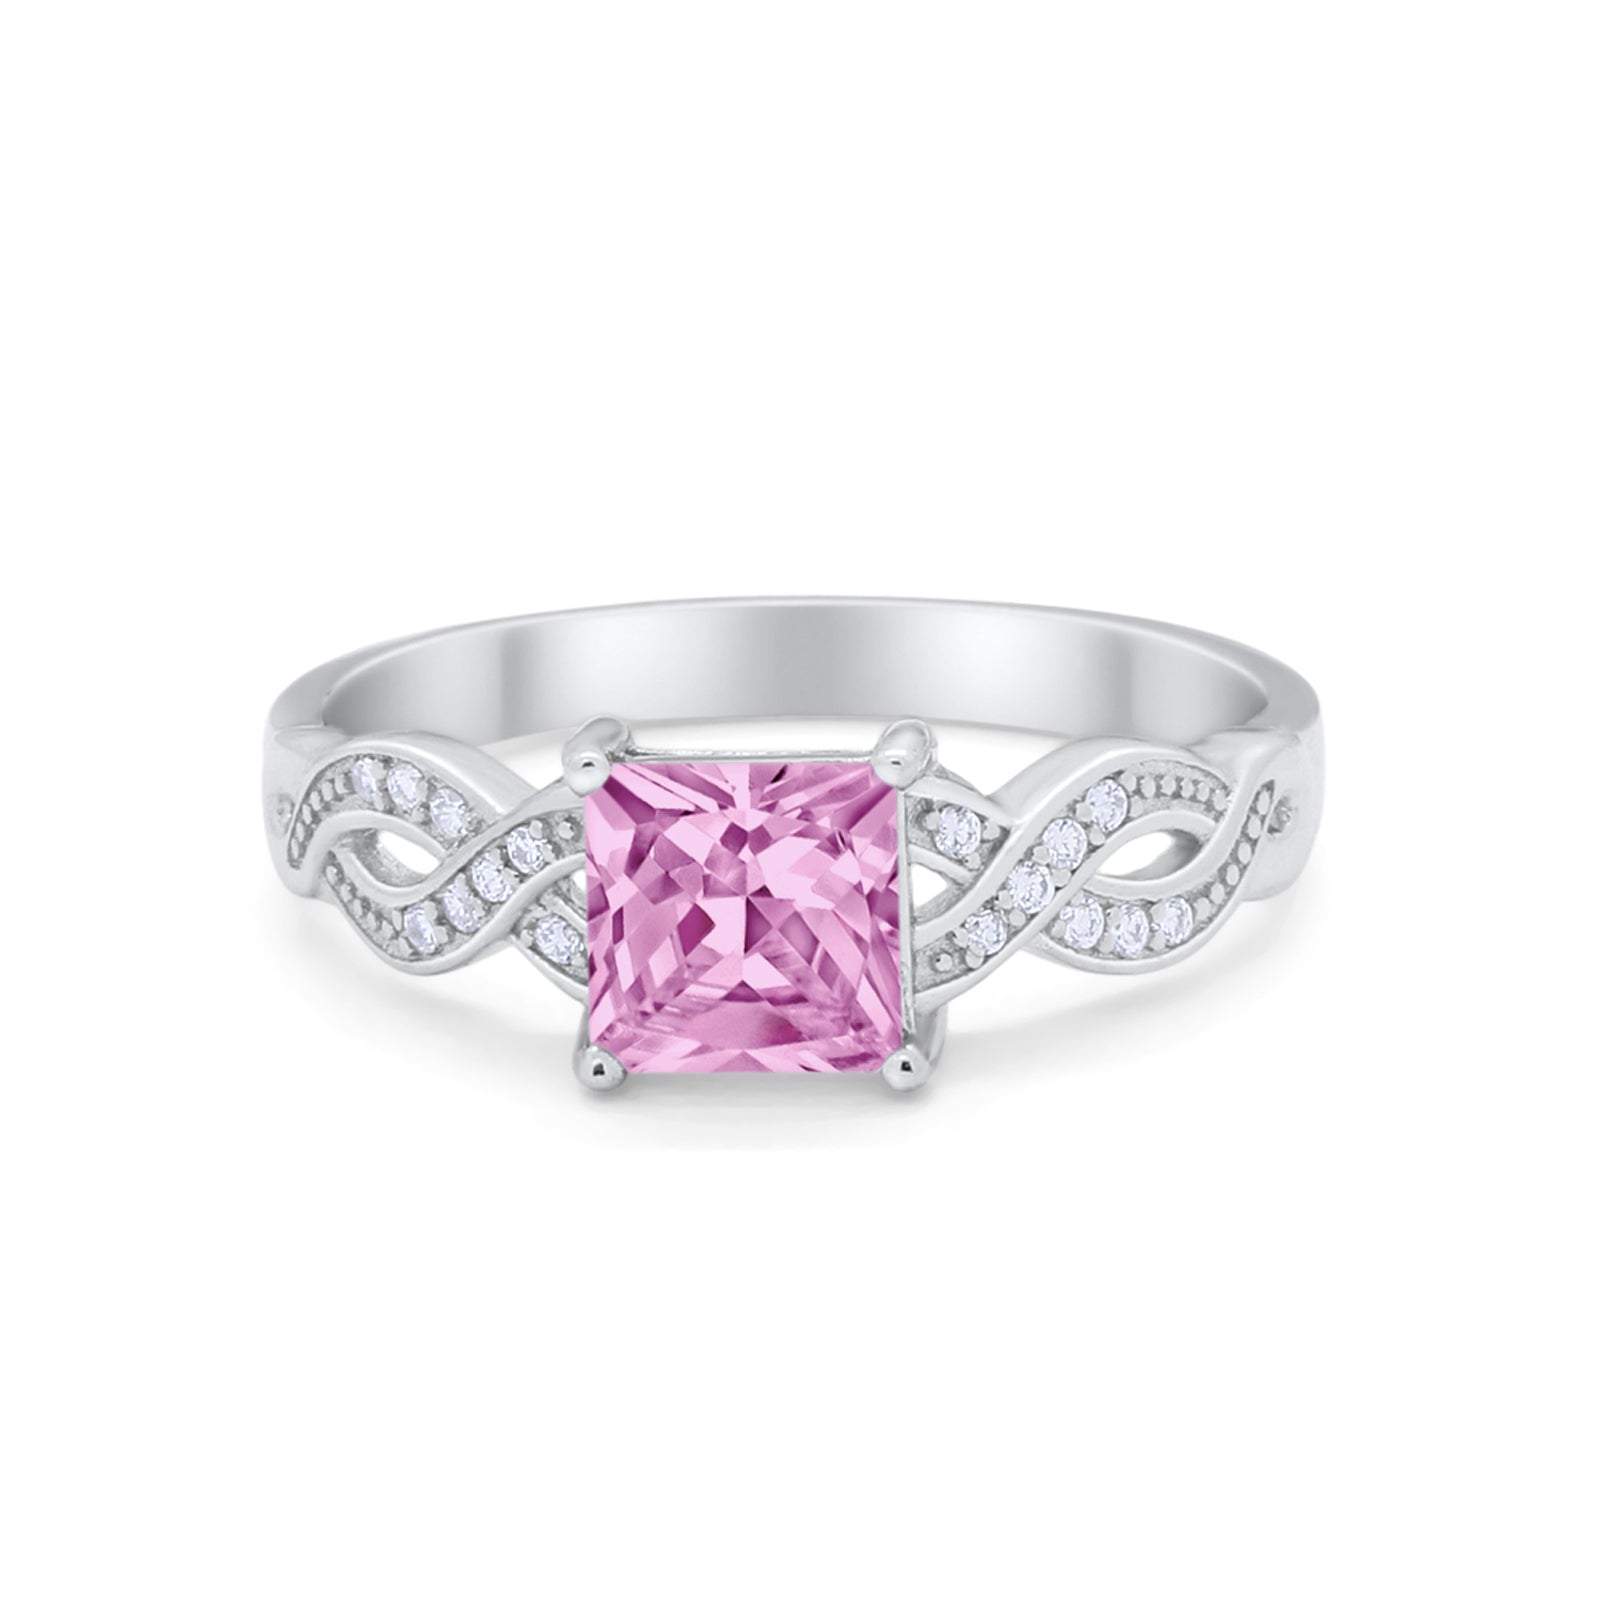 Solitaire Infinity Shank Ring Princess Cut Simulated Pink CZ 925 Sterling Silver